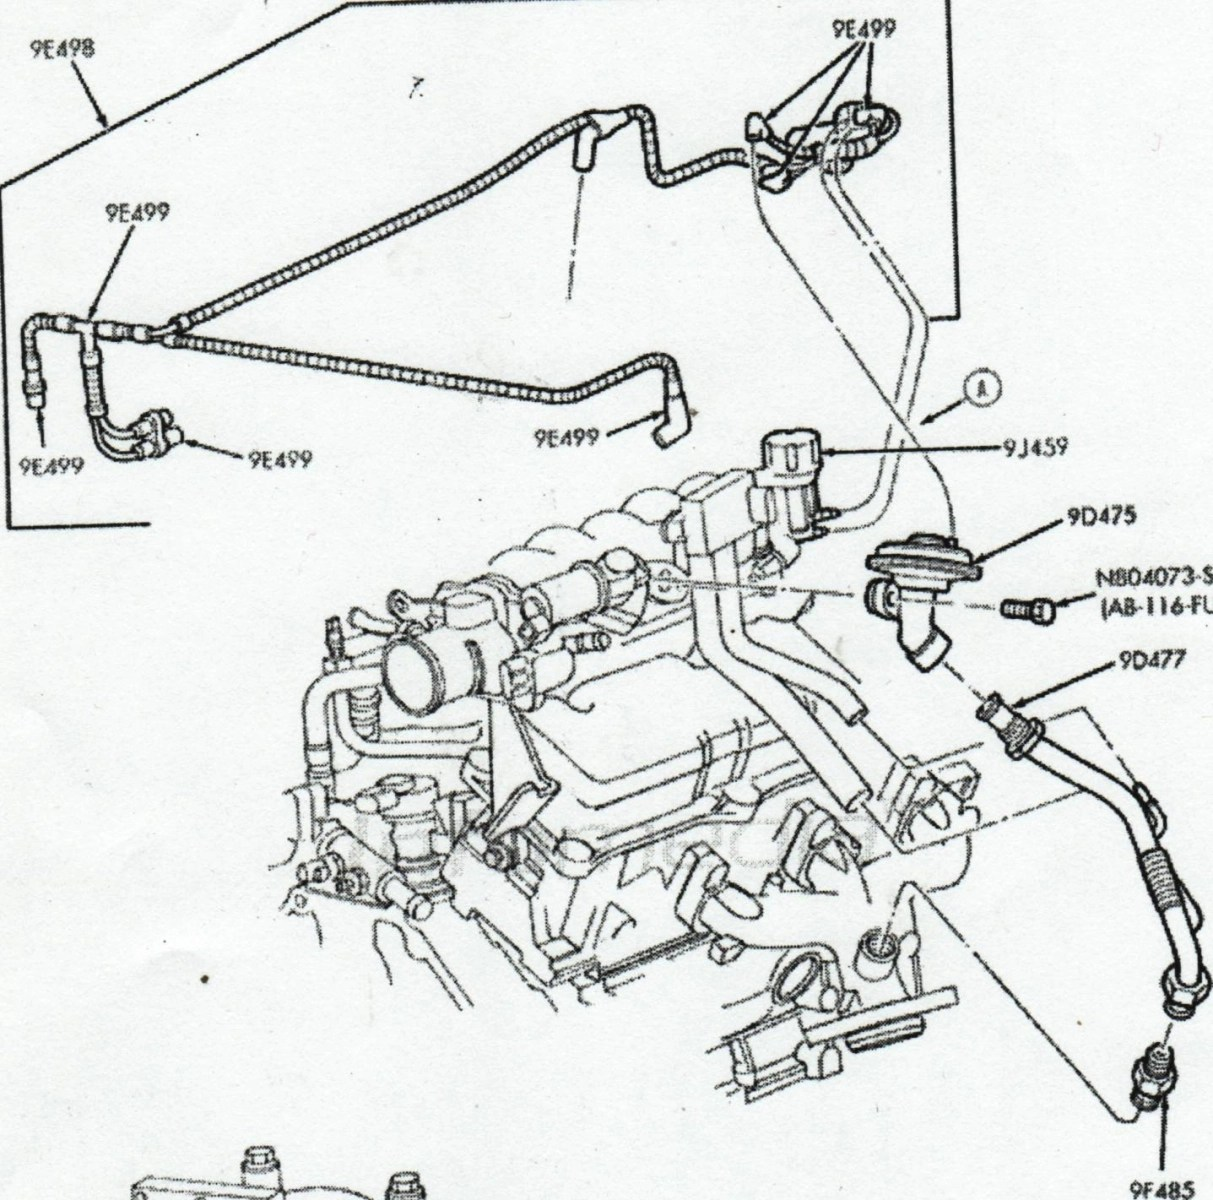 2003 taurus sel fuel tank question page 2 taurus car club of 1991 ford ranger starter solenoid wiring diagram